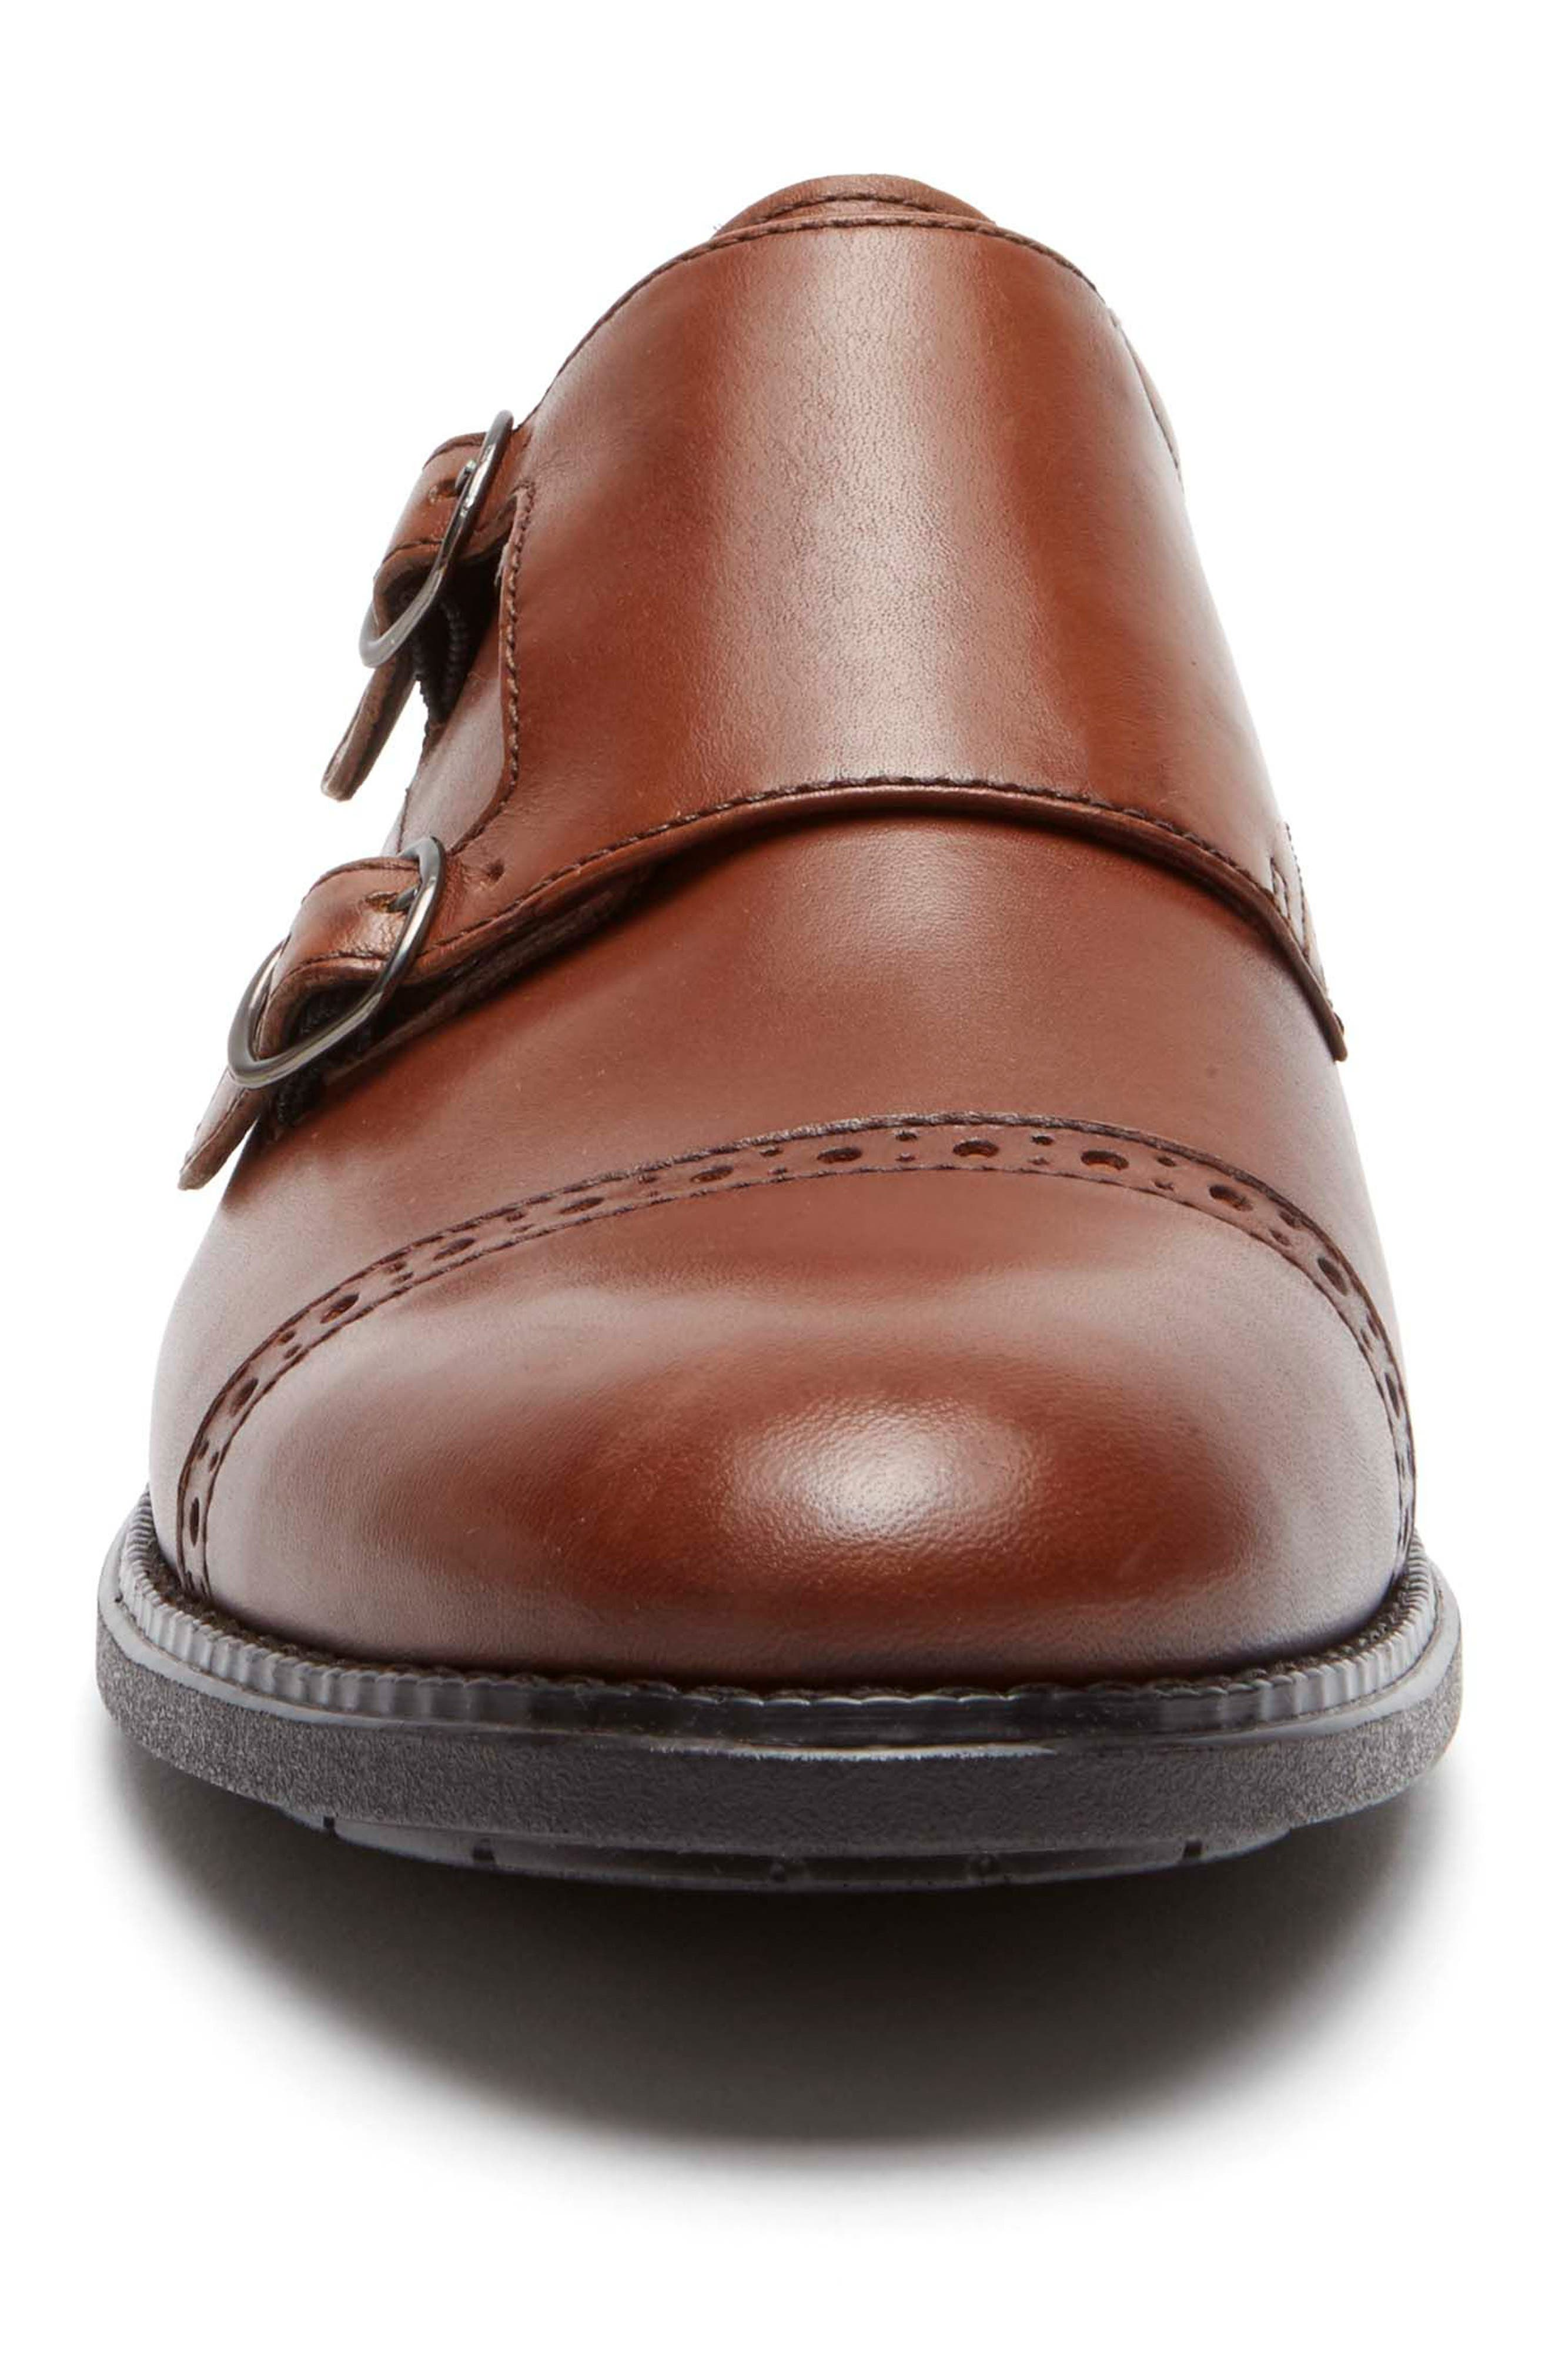 Madson Double Monk Strap Shoe,                             Alternate thumbnail 4, color,                             Tan Leather